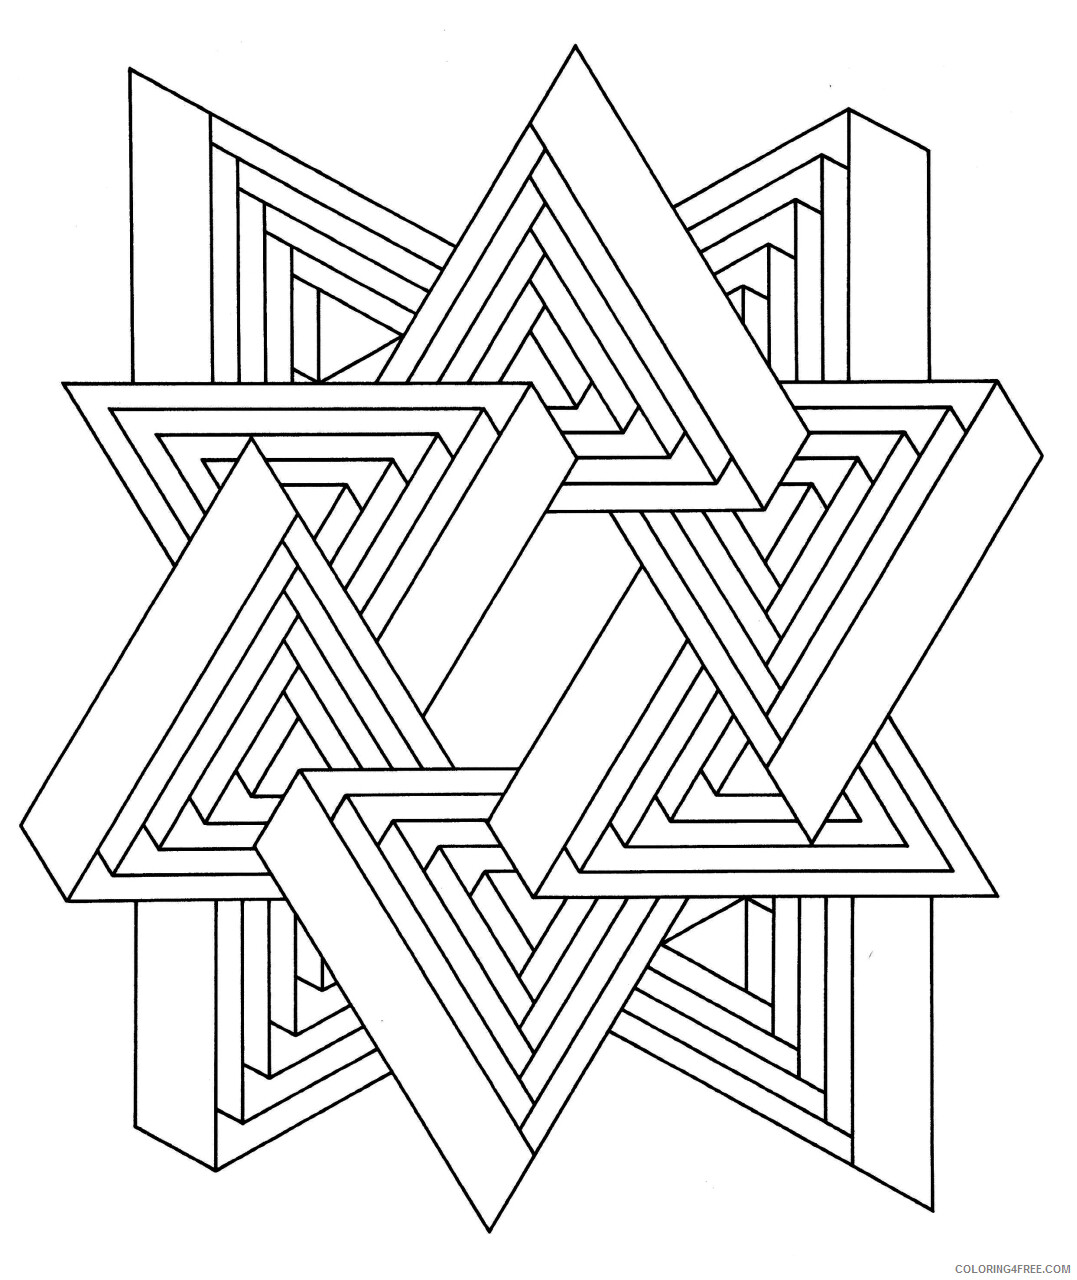 Geometric Design Coloring Pages Adult hard to print out Printable 2020 408 Coloring4free